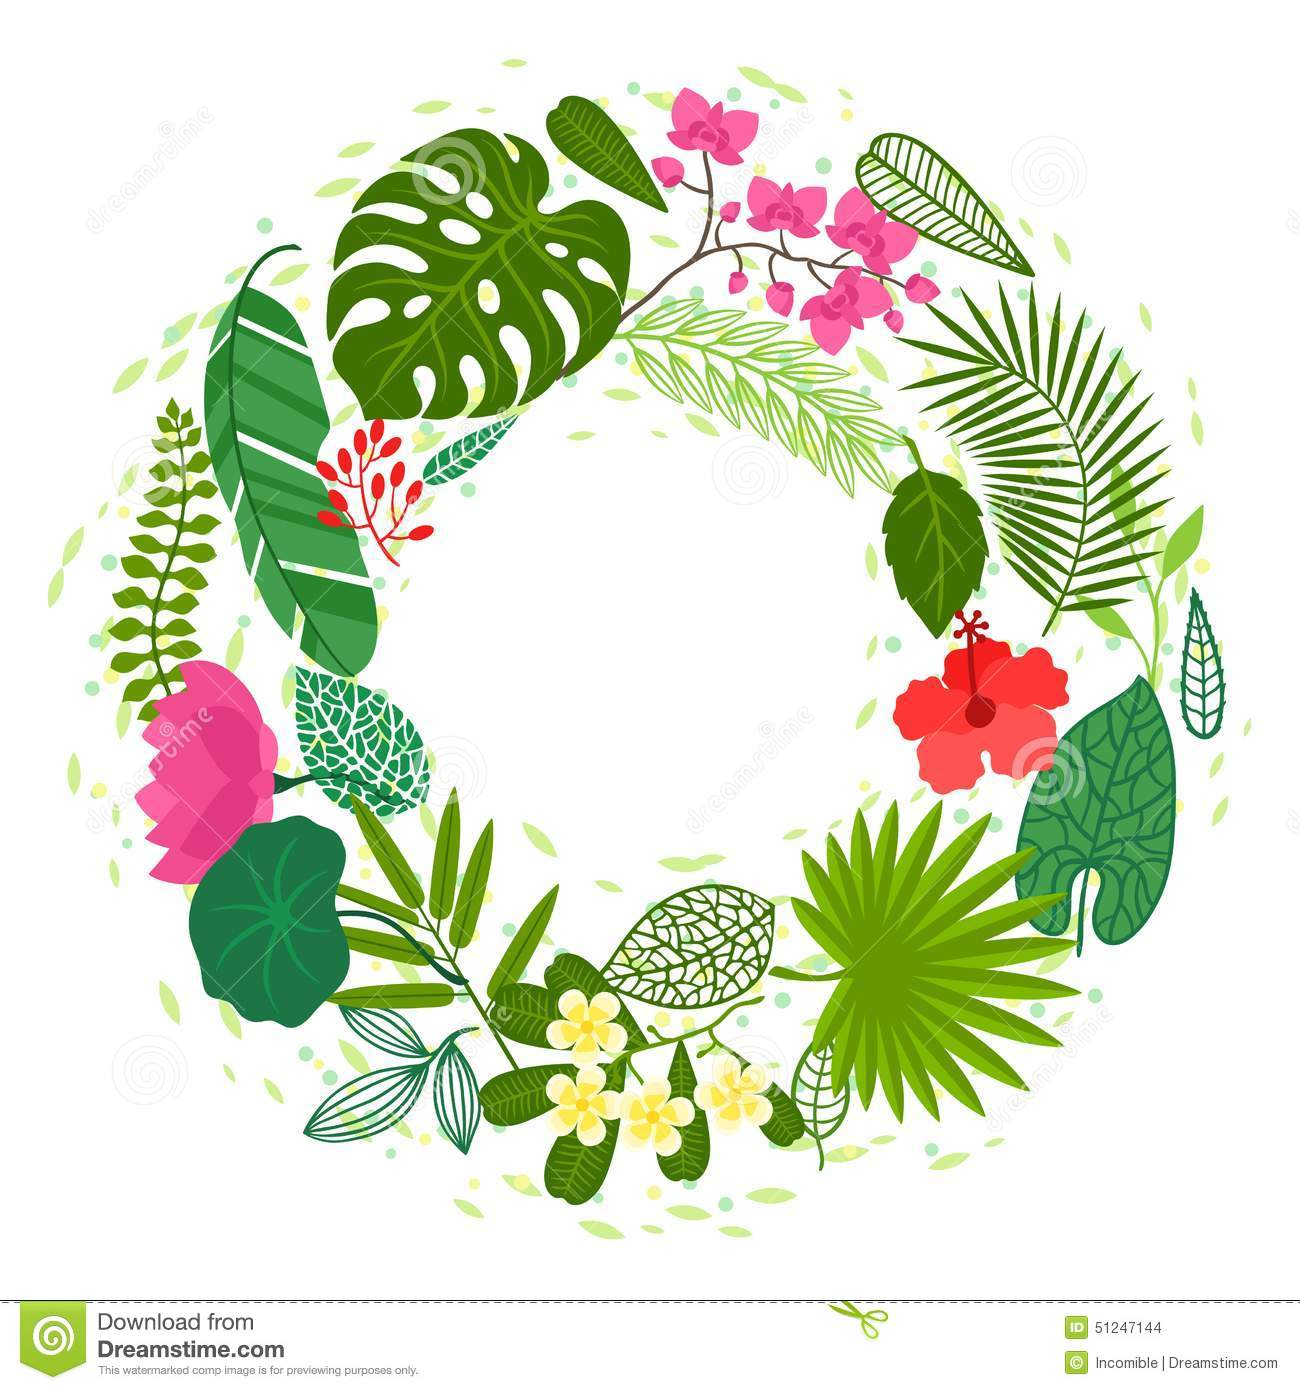 Stock Illustration Background Stylized Tropical Plants Leaves Flowers Image51247144 on bamboo orchid